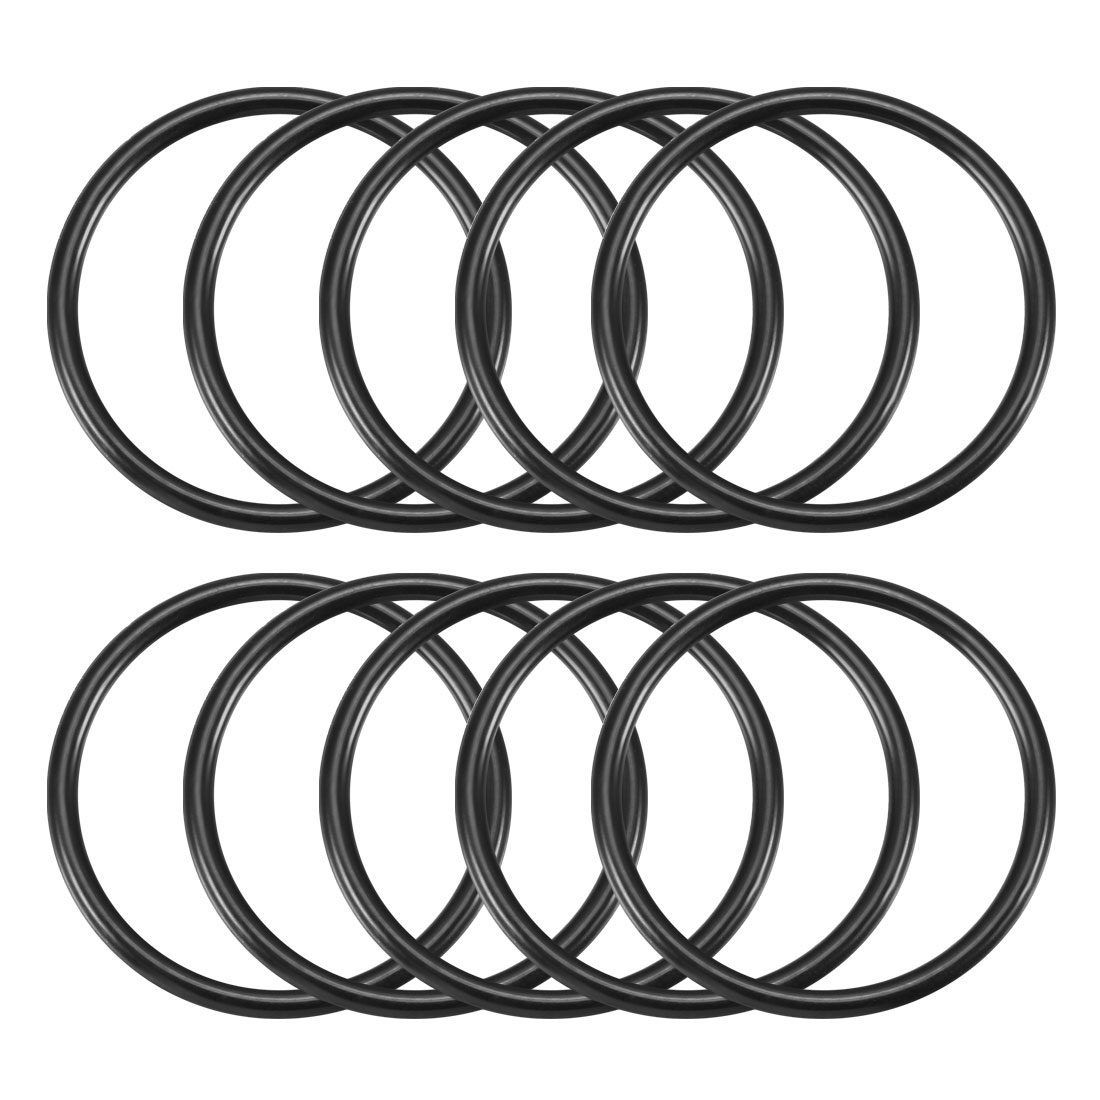 3.1mm x 45mm Black Nitrile Rubber Sealing O Ring Seal Washer Grommets 10 Pcs